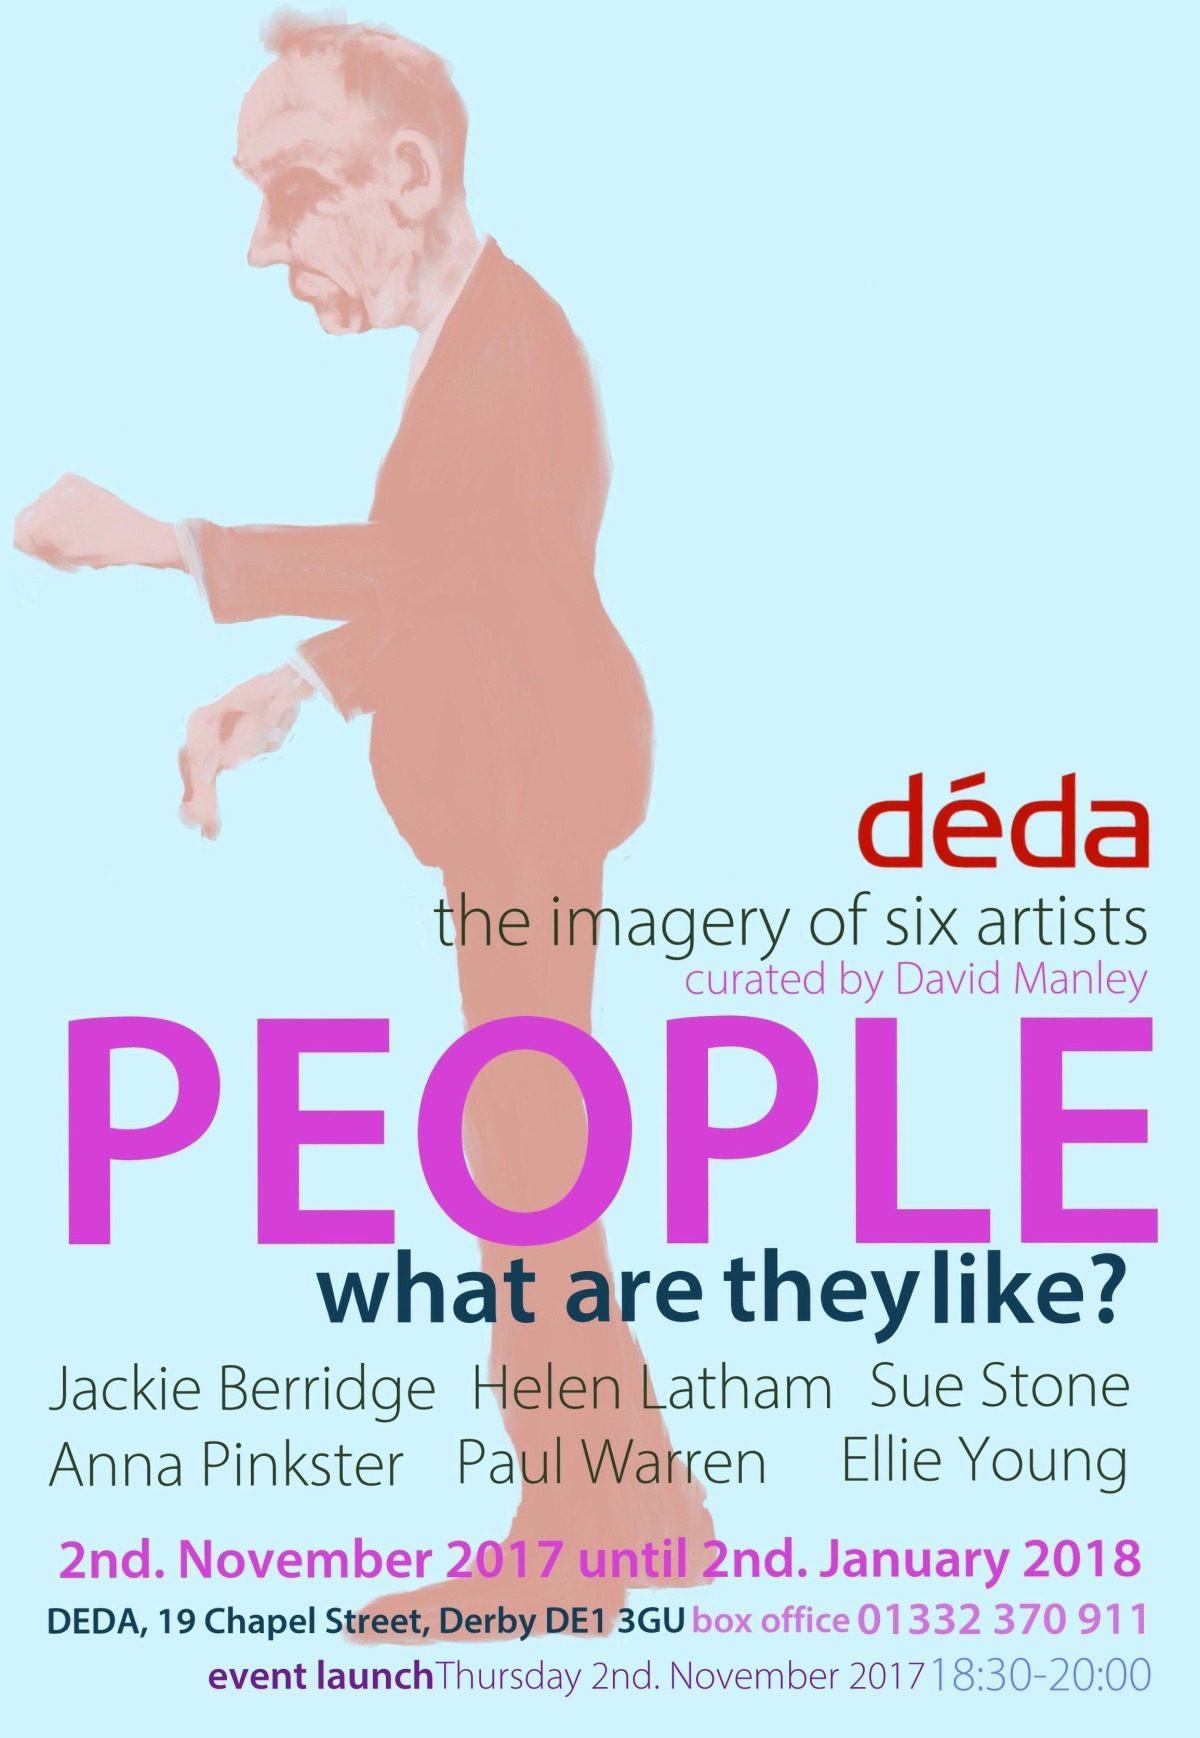 Deda_logo_people_flyer_(2)_26092017-003